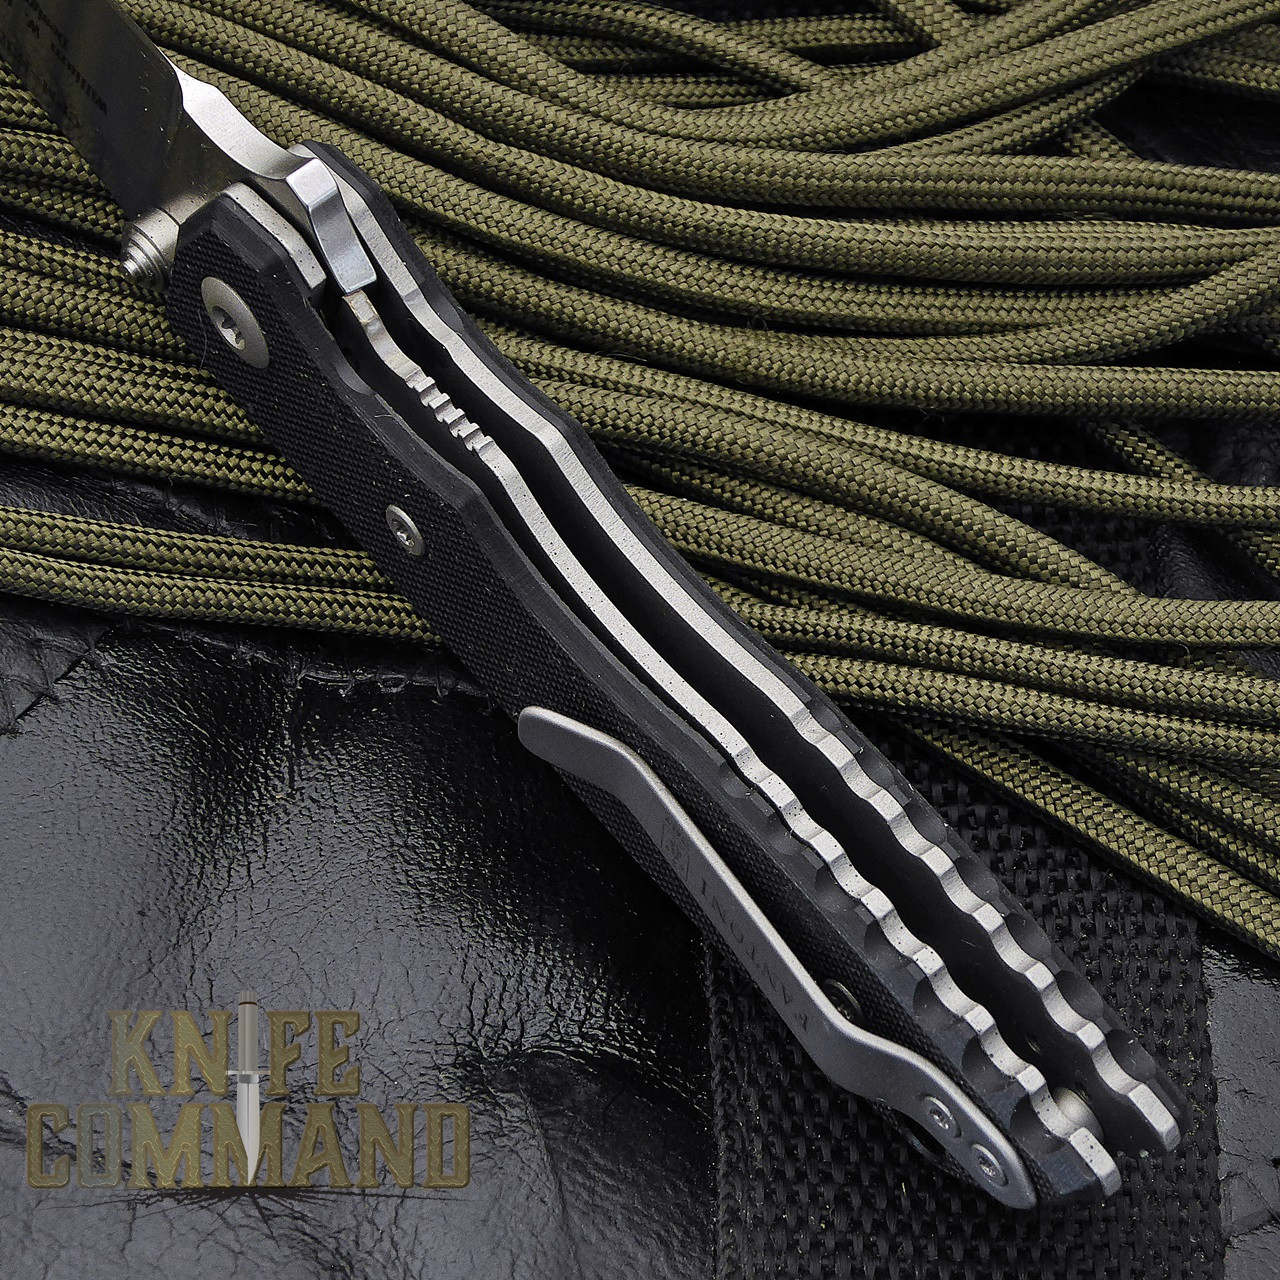 Fantoni HB 02 Black William Harsey Combat Folder Tactical Knife.  Titanium liner lock.